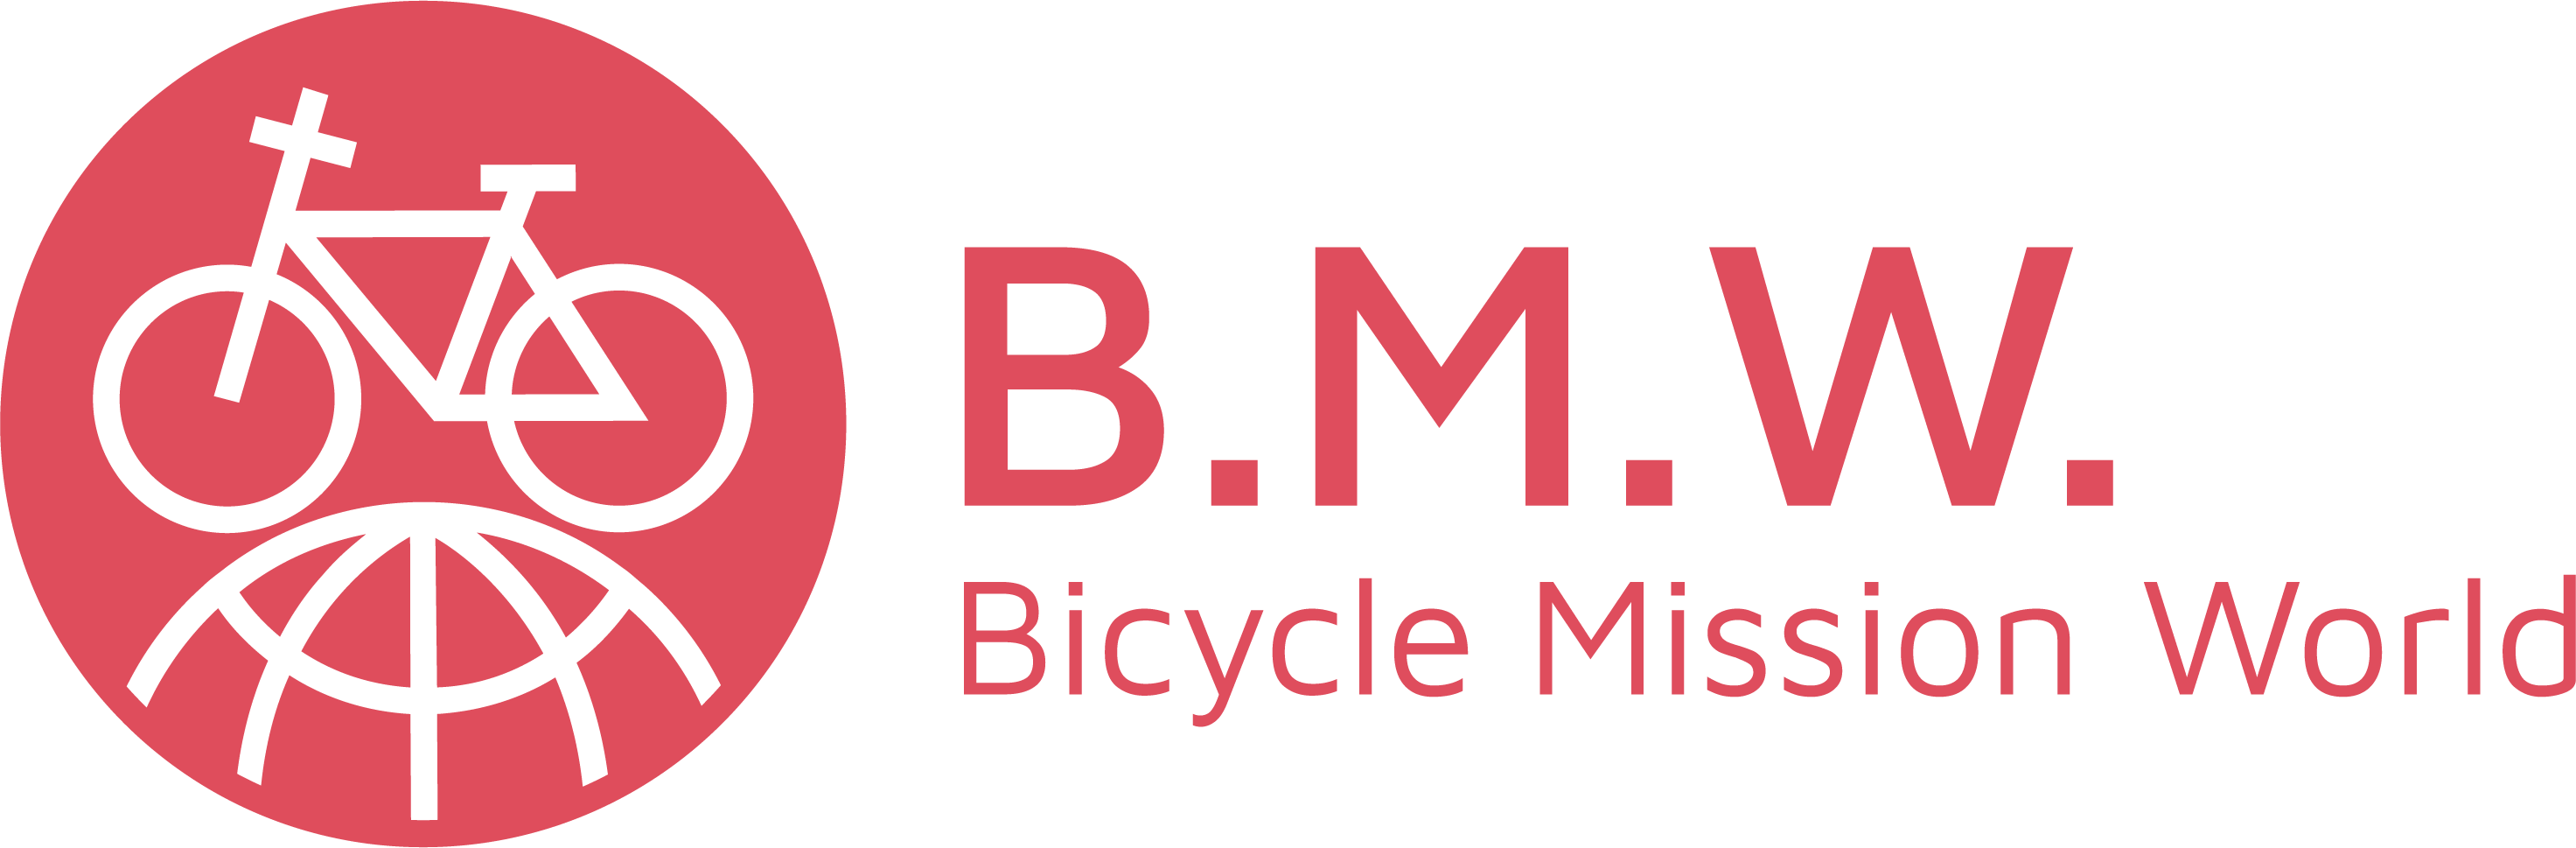 Bicycle Mission World Inc.